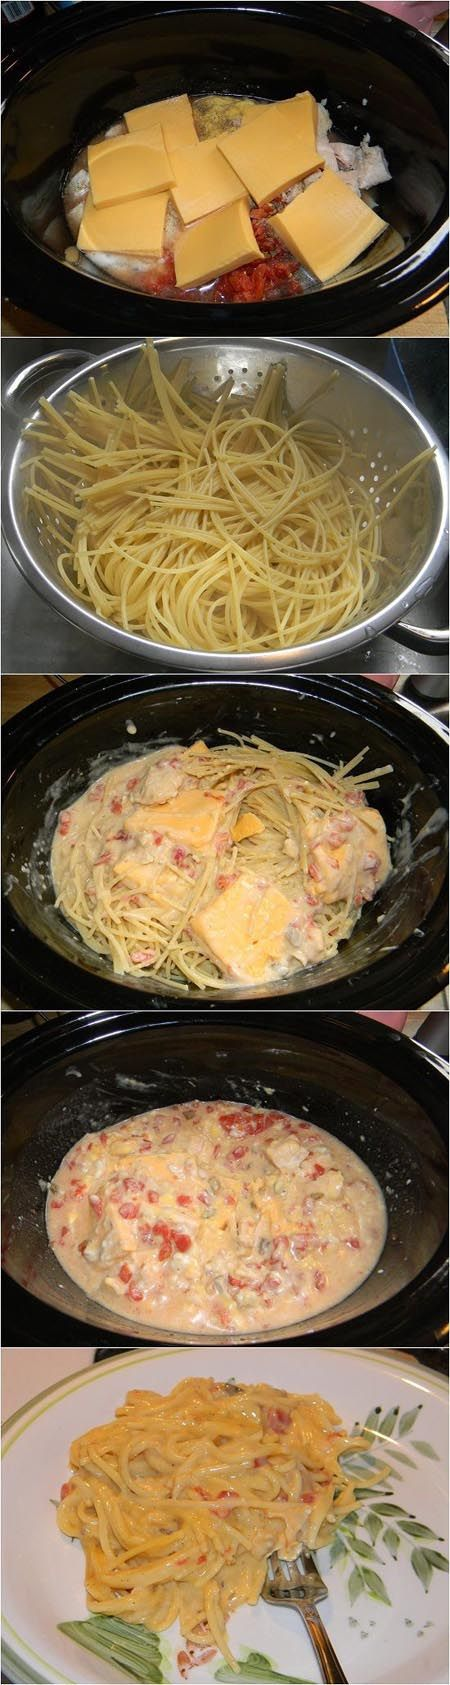 Easy Crock Pot Chicken and Cheese Spaghetti. Best Recipe!!